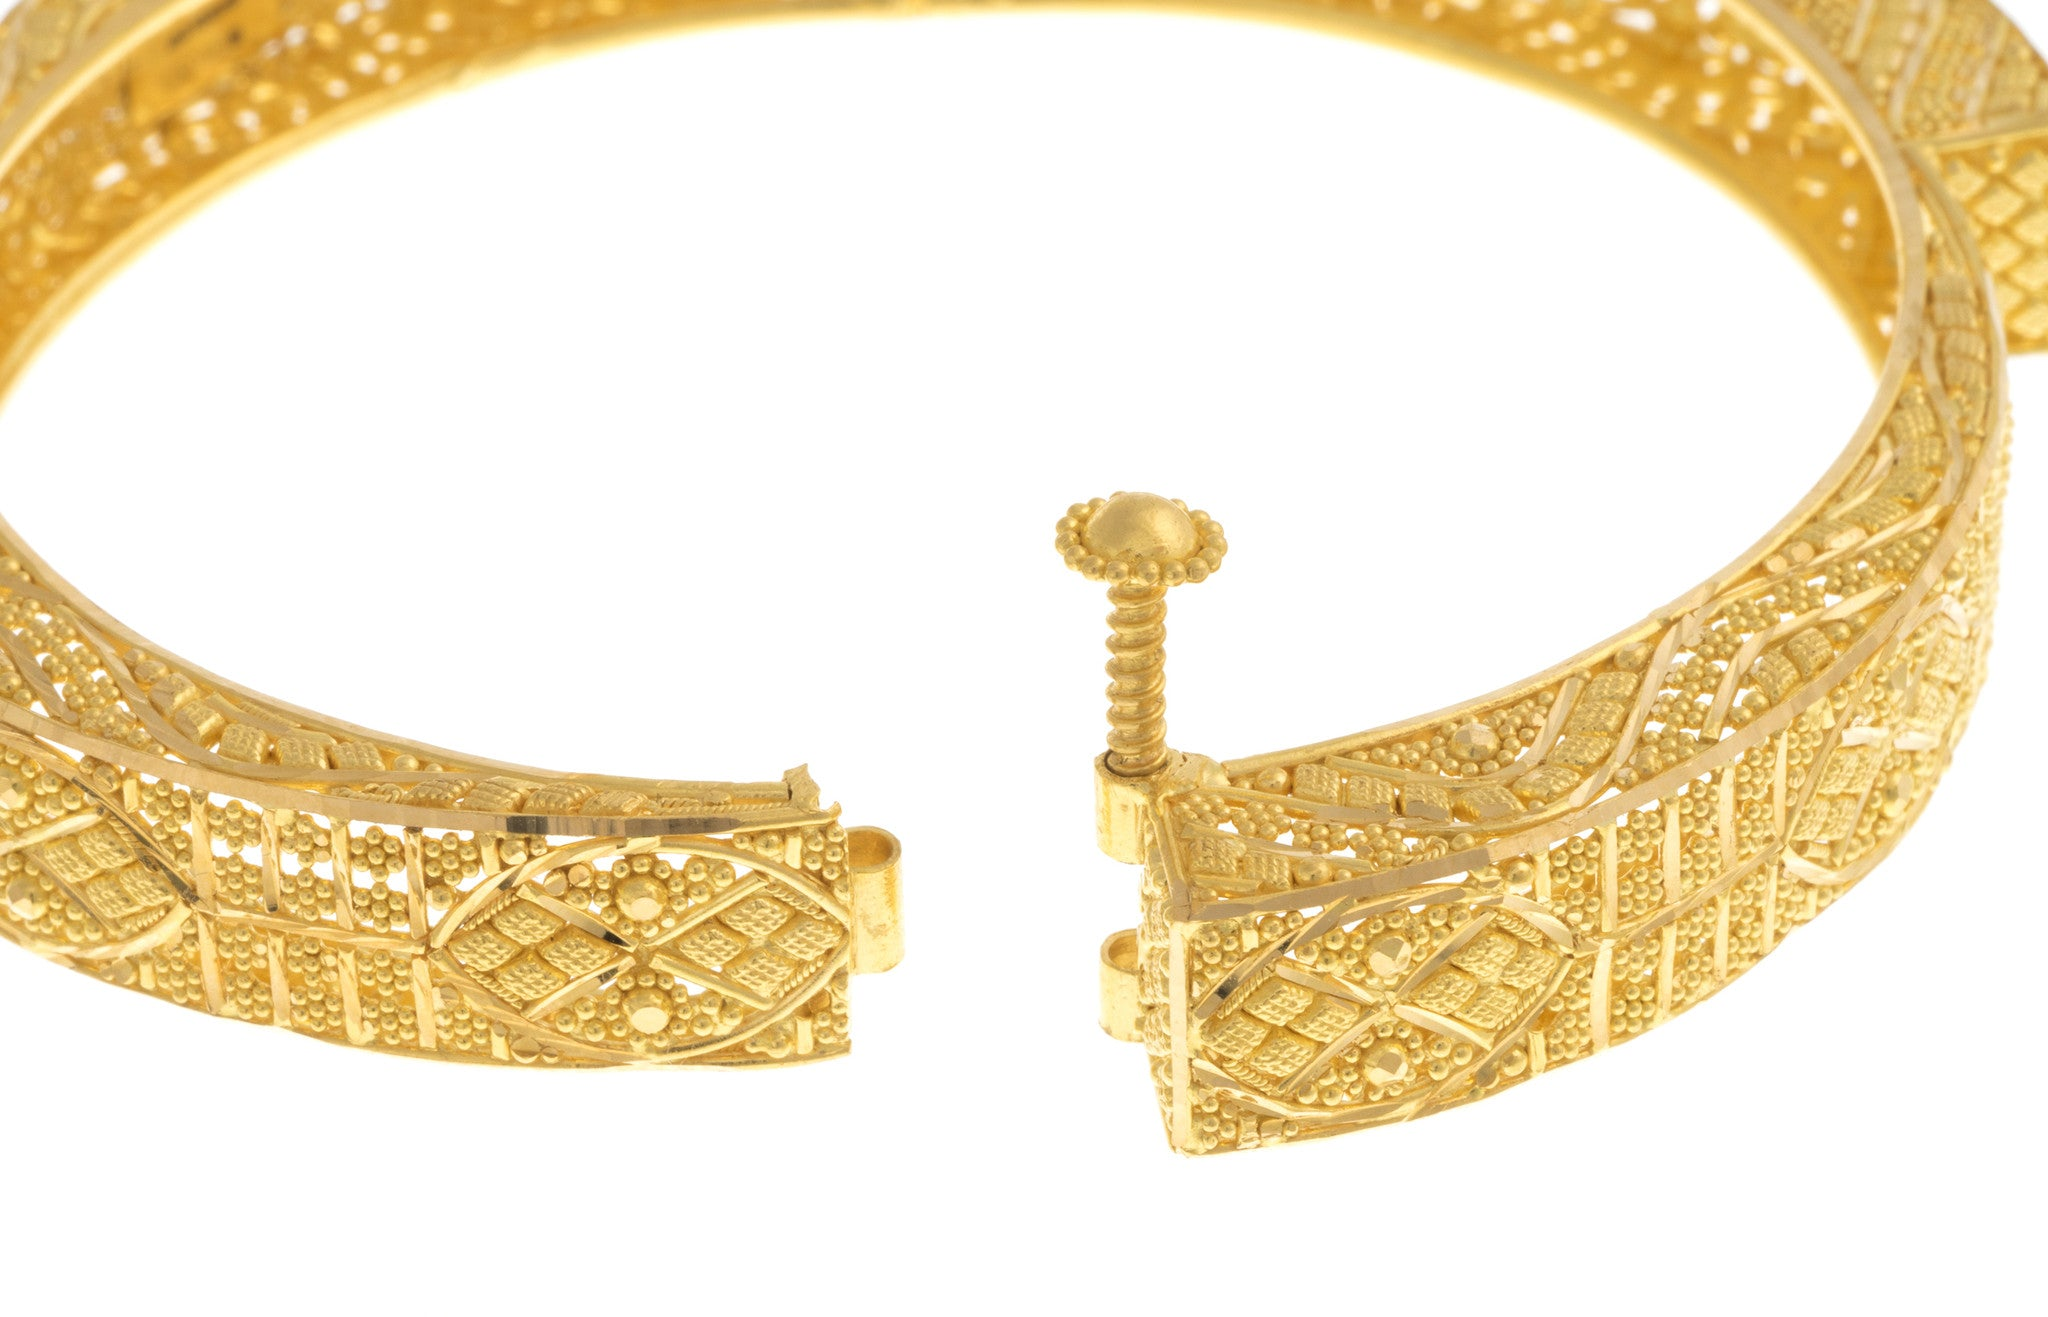 Filigree 22ct Yellow Gold Bangle, Minar Jewellers - 8